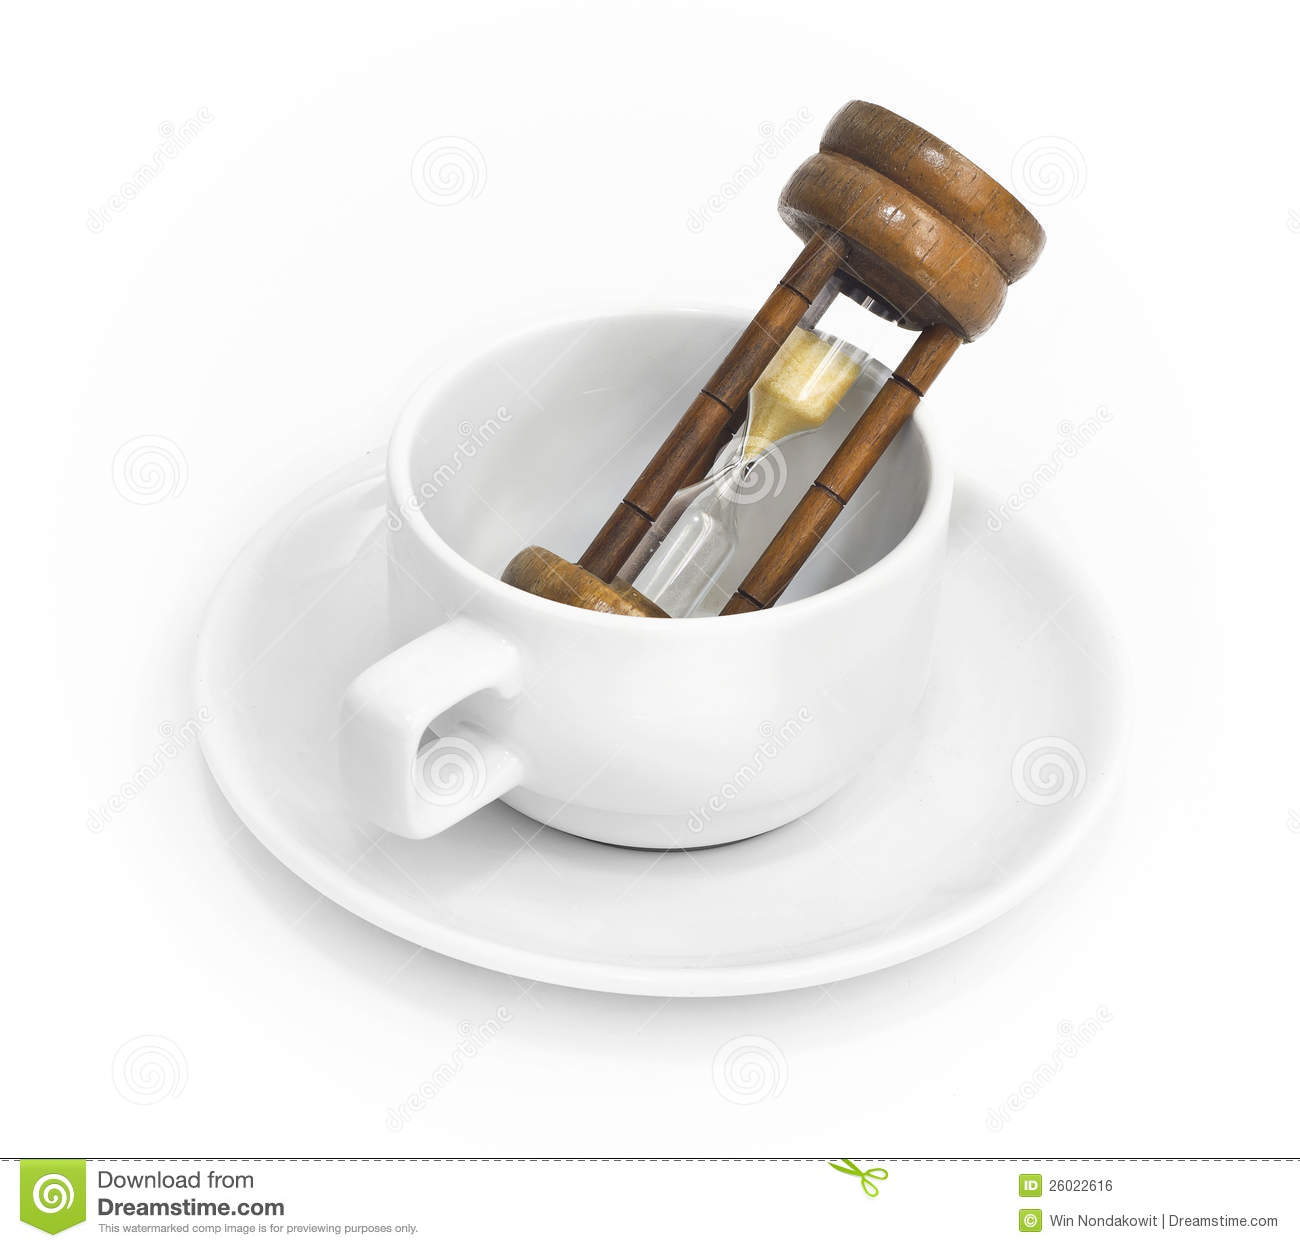 Coffee Break Royalty Free Stock Image - Image: 26022616